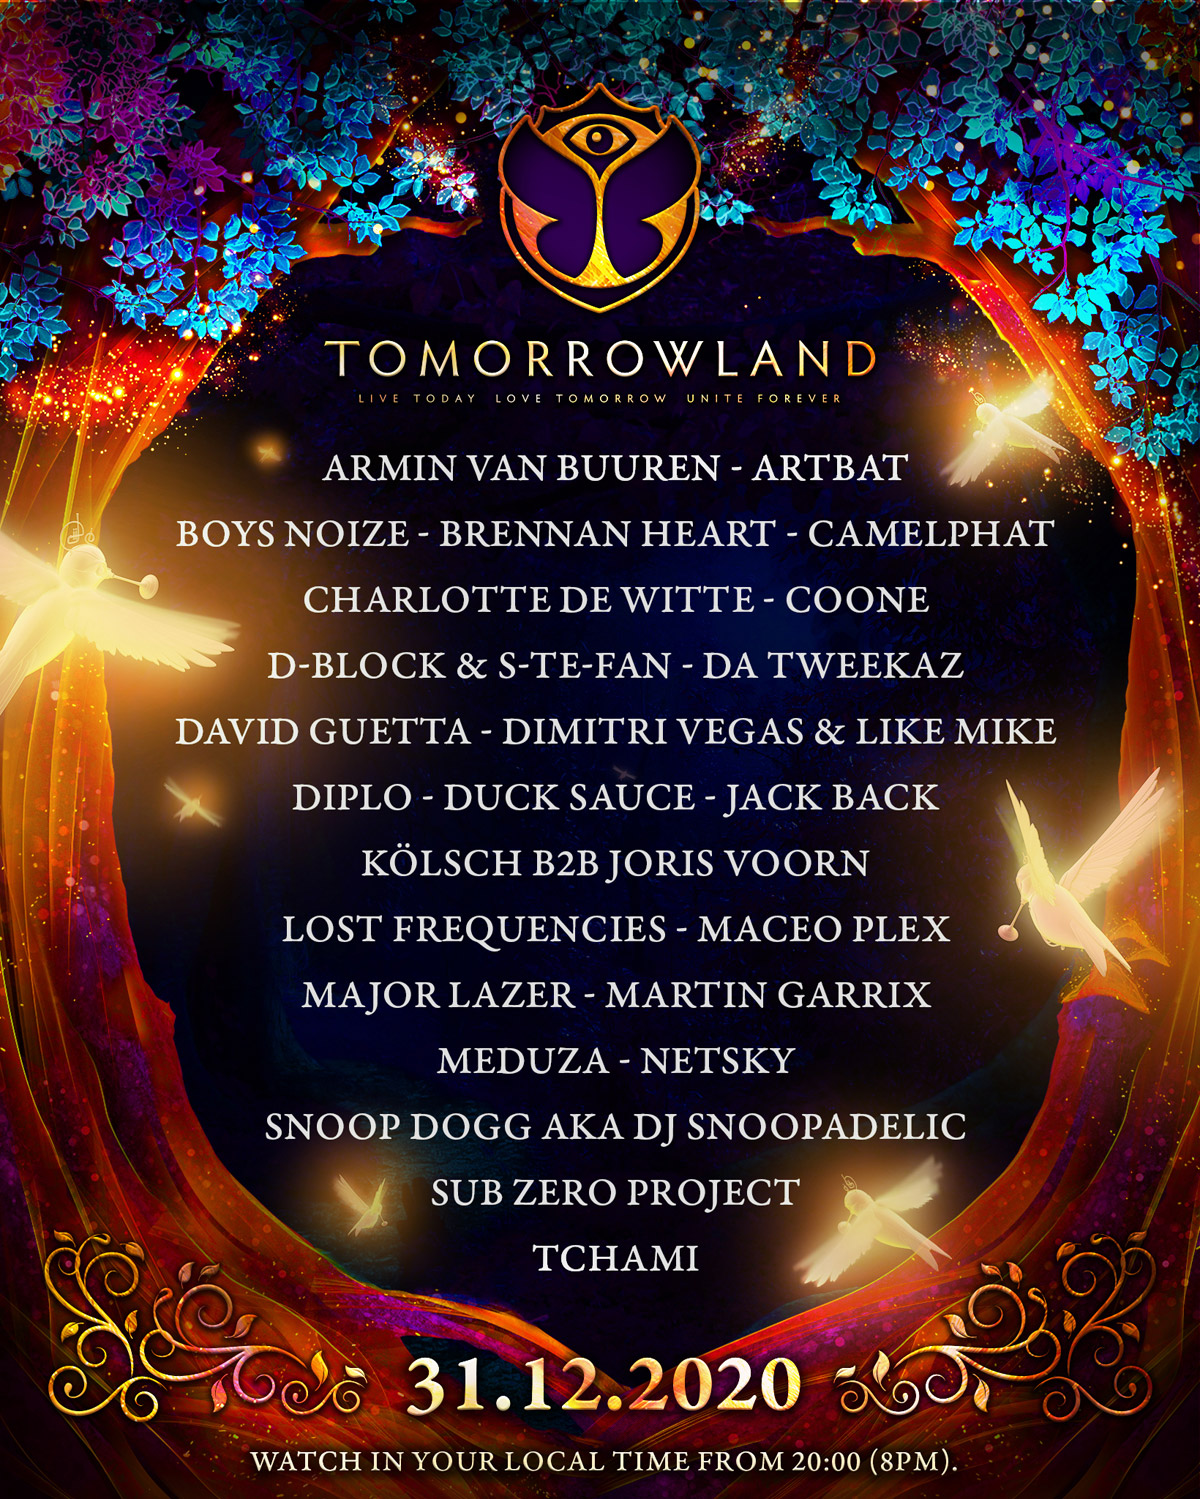 Tomorrowland 31.12